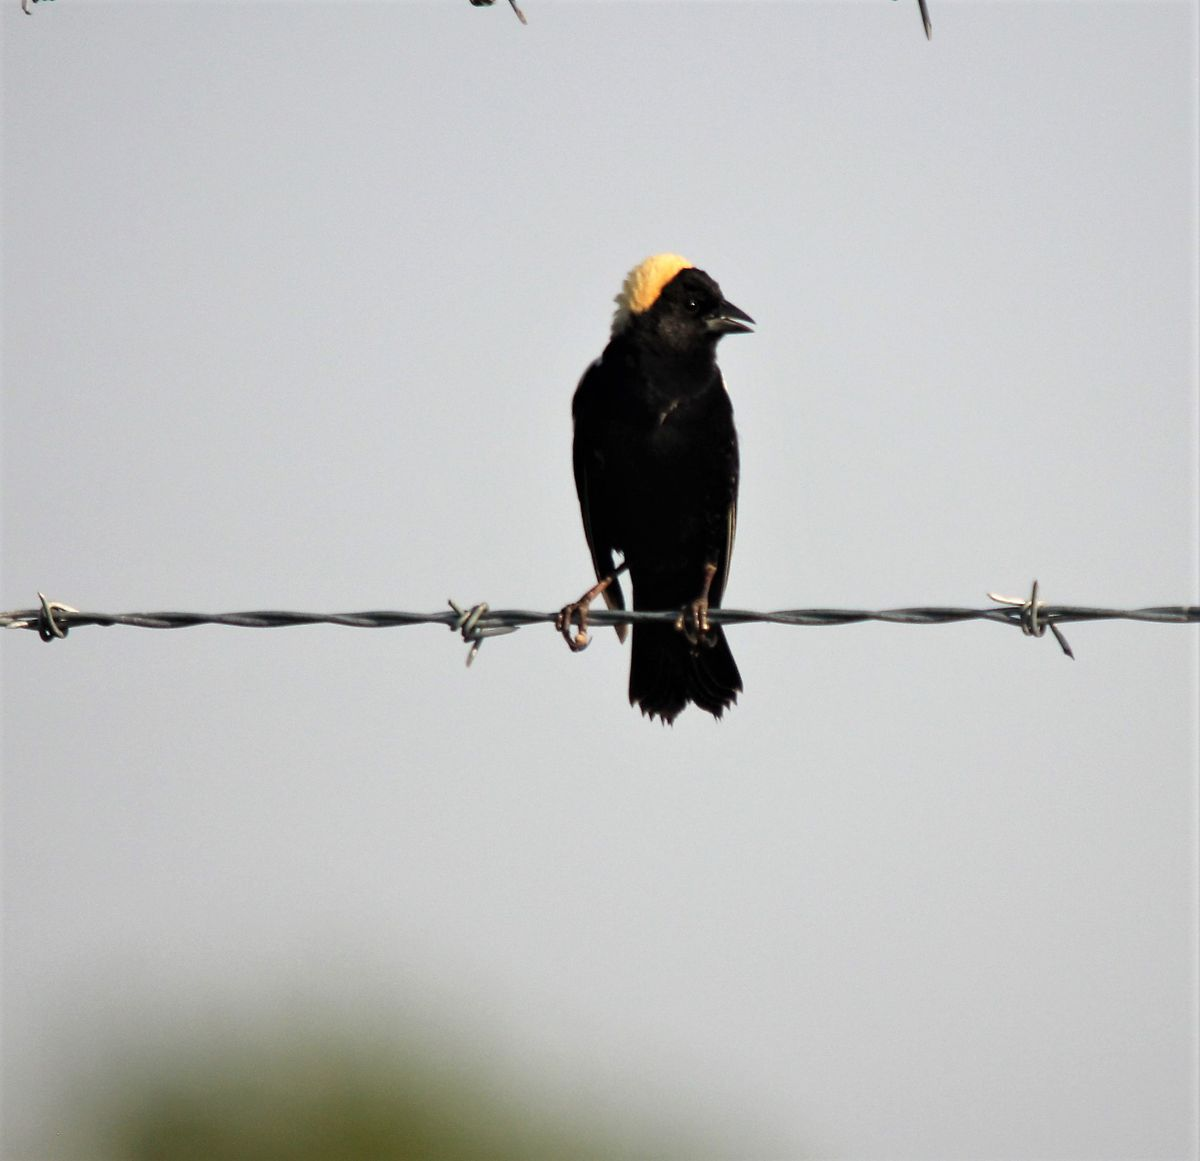 Bobolink on barbed wire at Midewin National Tallgrass Prairie. Credit: Les Winkeler